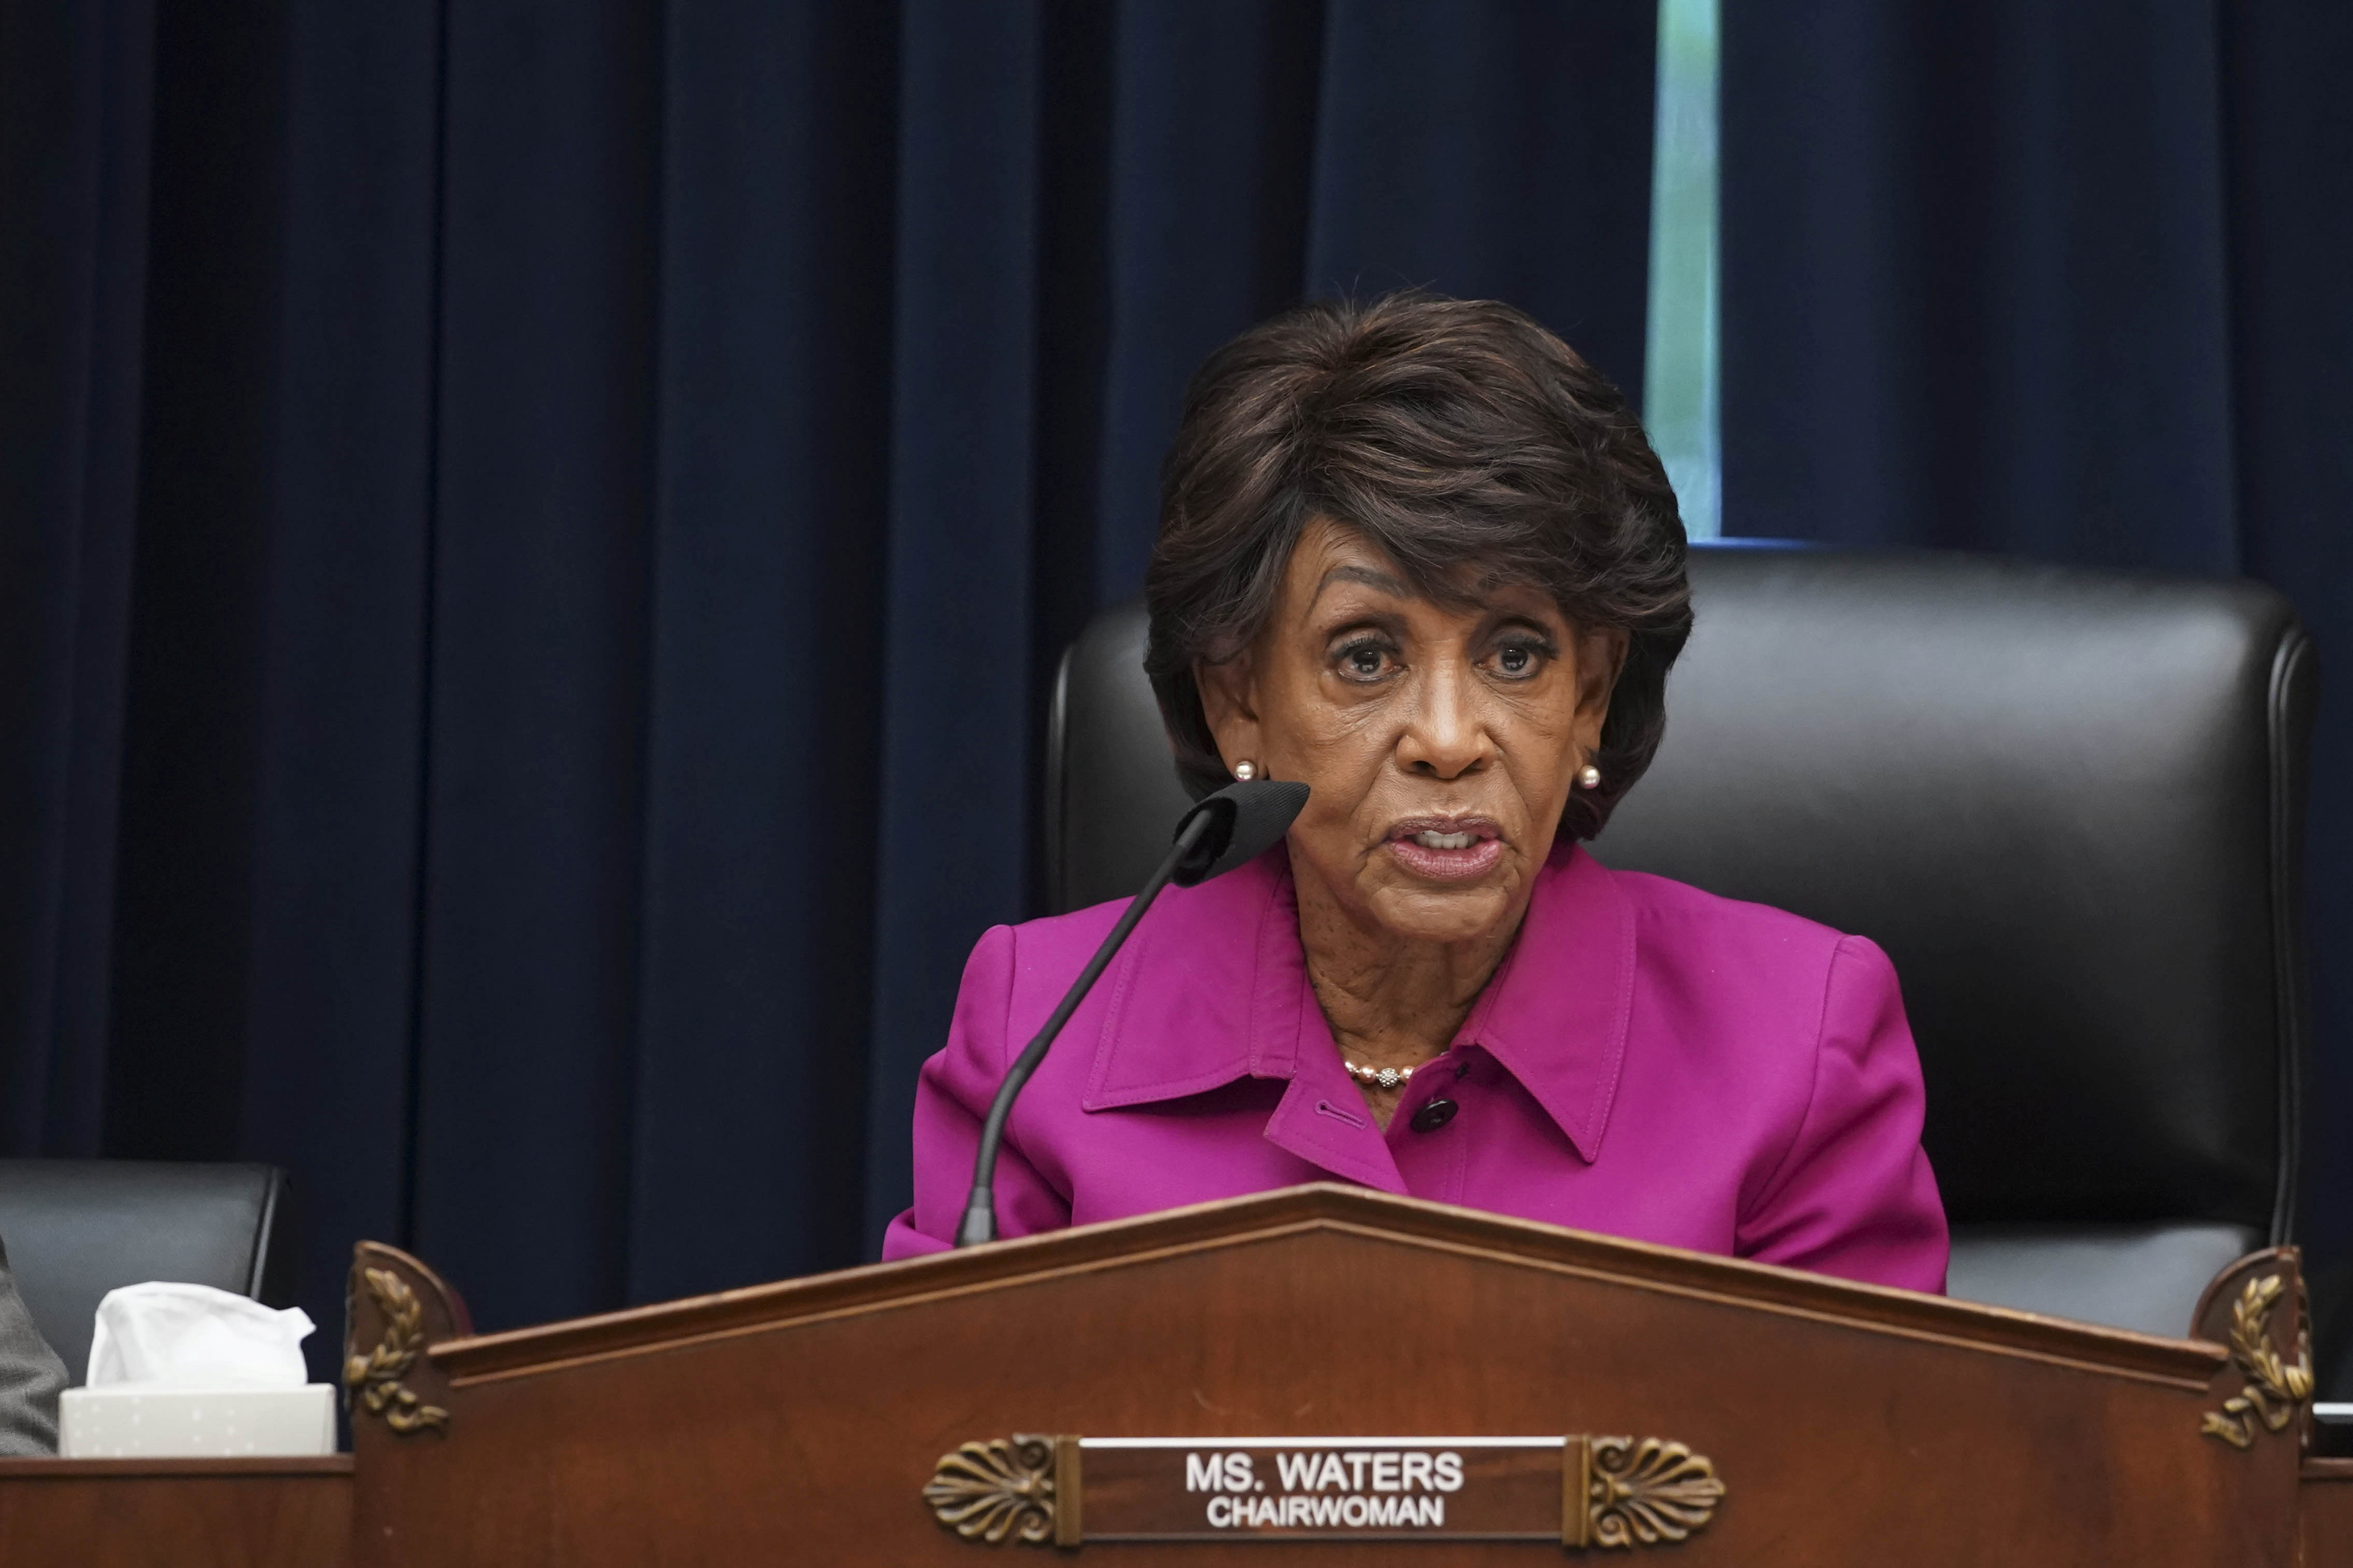 Representative and chairwoman Maxine Waters (D-CA) attends the House Financial Services Committee hearing on Capitol Hill in Washington, U.S., September 30, 2021.  Al Drago/Pool via REUTERS/Files